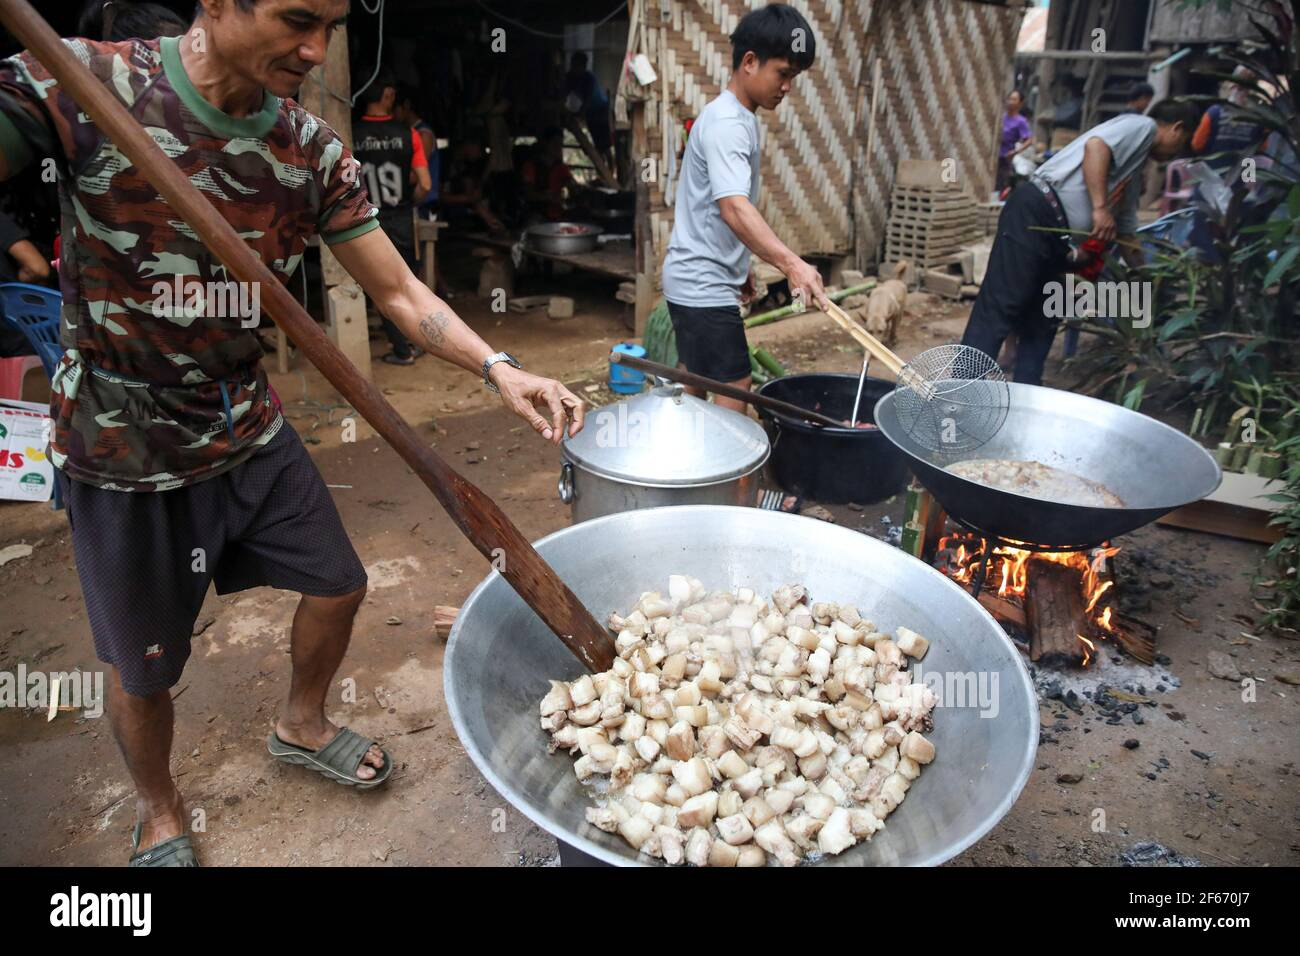 Izzie, 49, former Karenni Army (KNPP) cooks during a death anniversary in the Kayan village where people, who fled from Myanmar during the 1990s war between Myanmar's army and ethnic army groups, live in Mae Hong Son, Thailand March 25, 2021. Picture taken March 25, 2021. REUTERS/Soe Zeya Tun Stock Photo